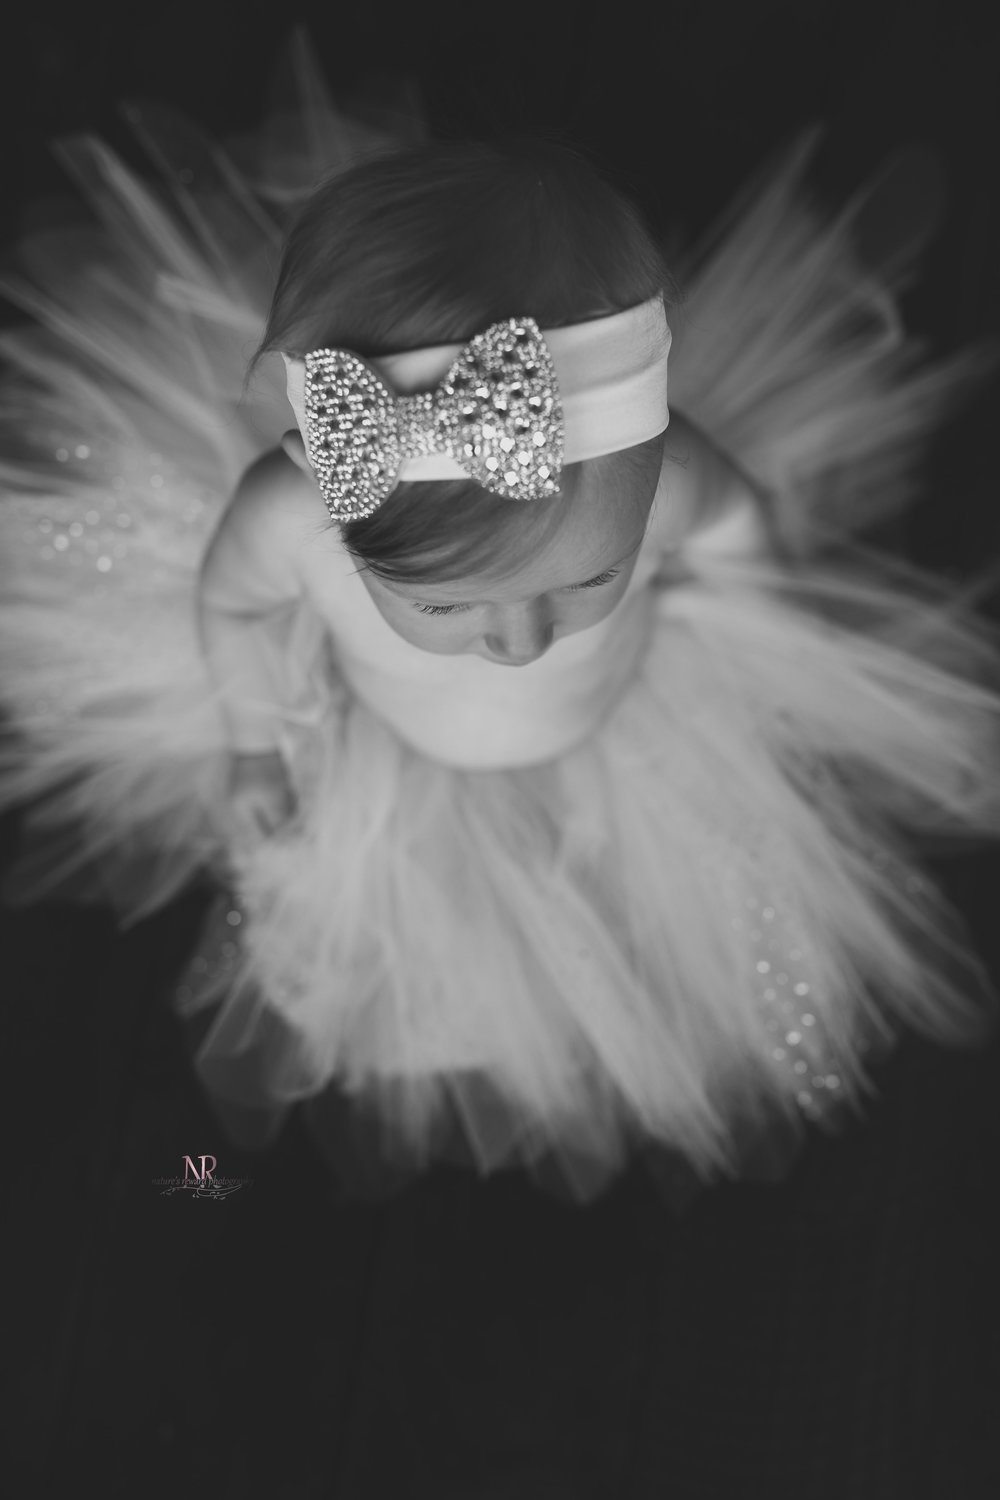 The Details!  The headband, the bangs, the eyelashes, the tutu  flare!